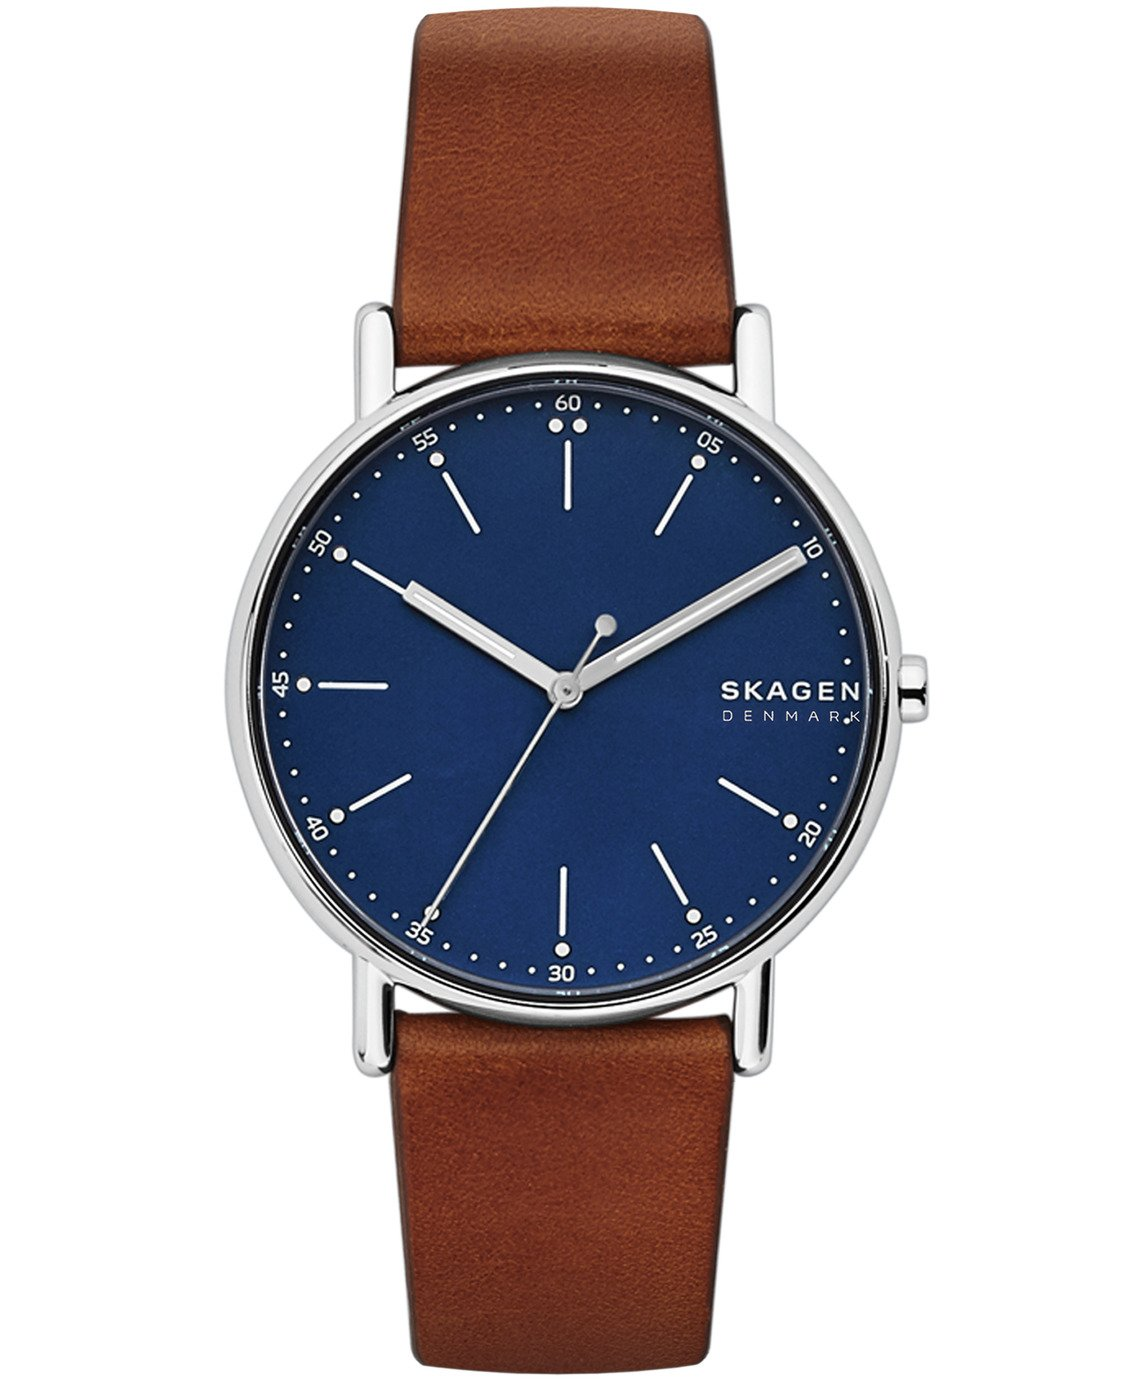 Skagen Men's Signiture brown Leather Strap Watch